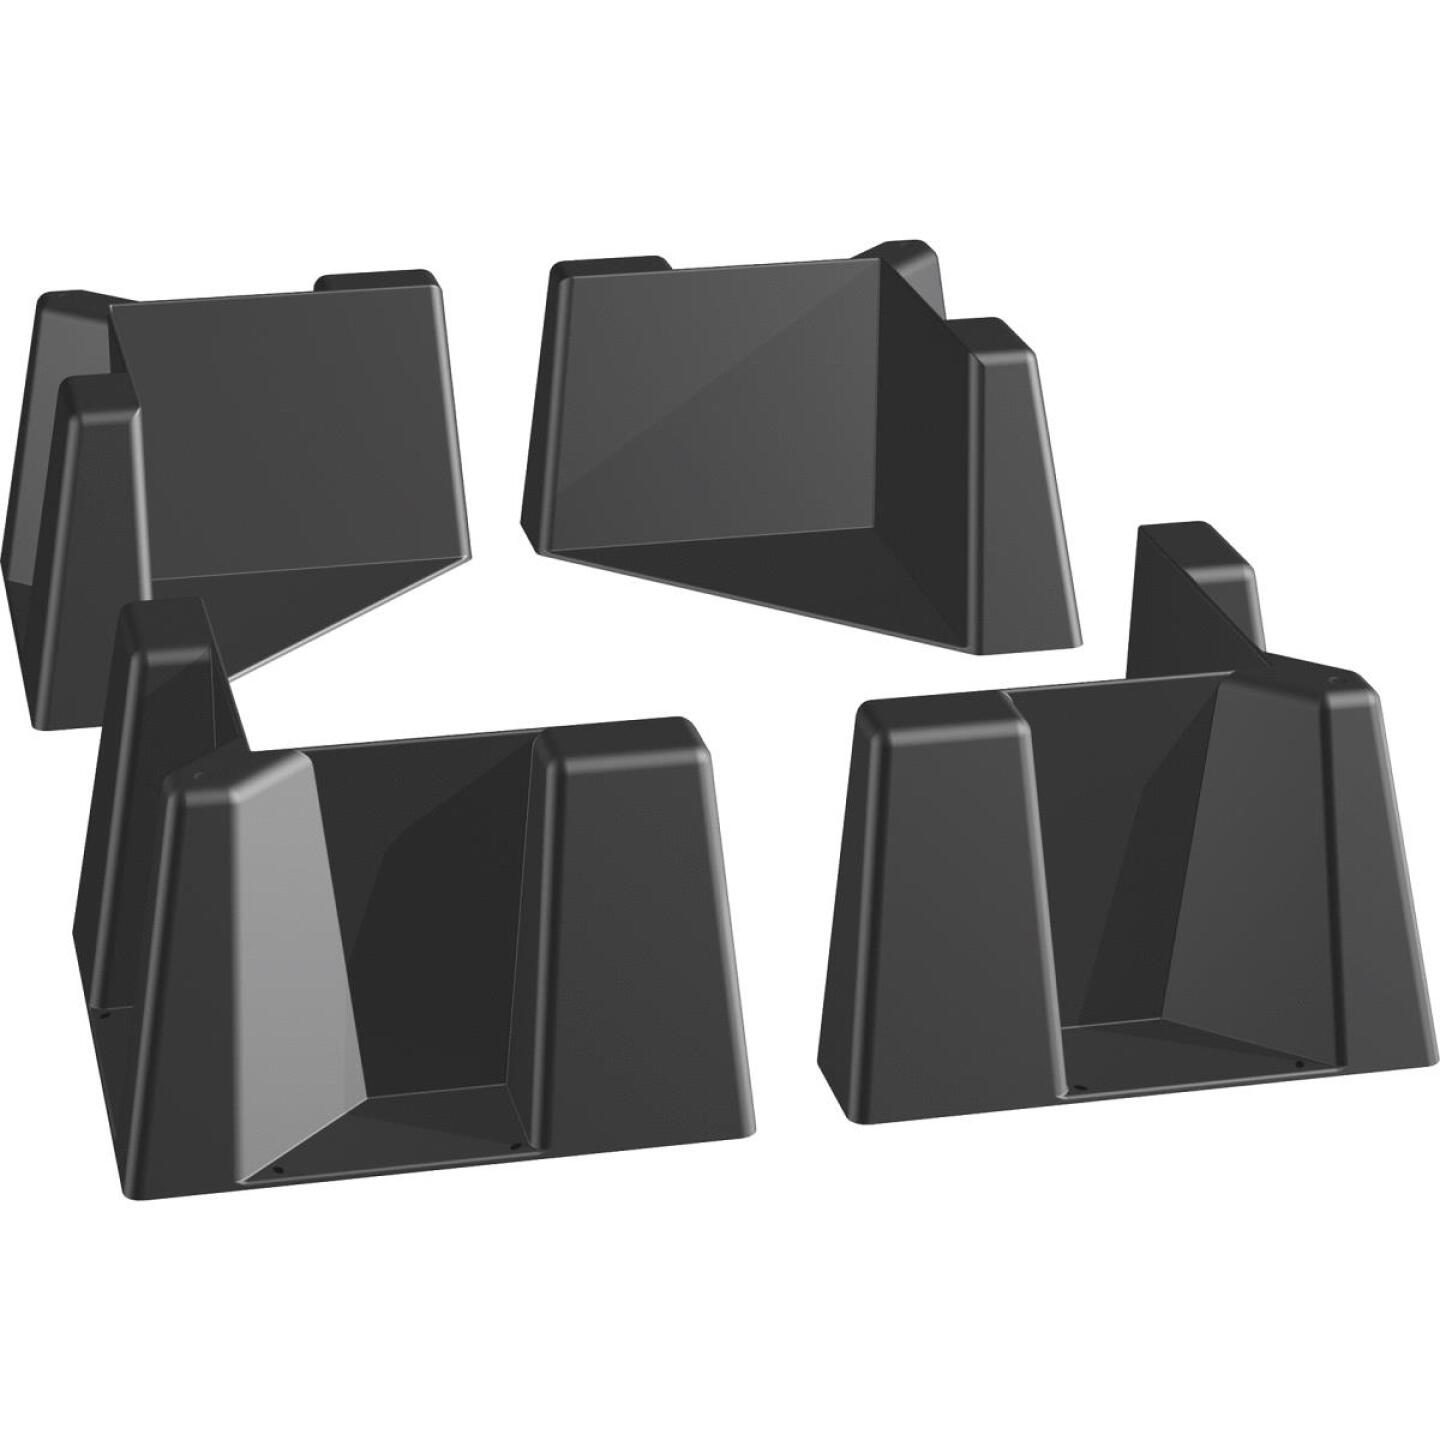 WeatherTech CargoTech Plastic Cargo Carrier (4-Pack) Image 1